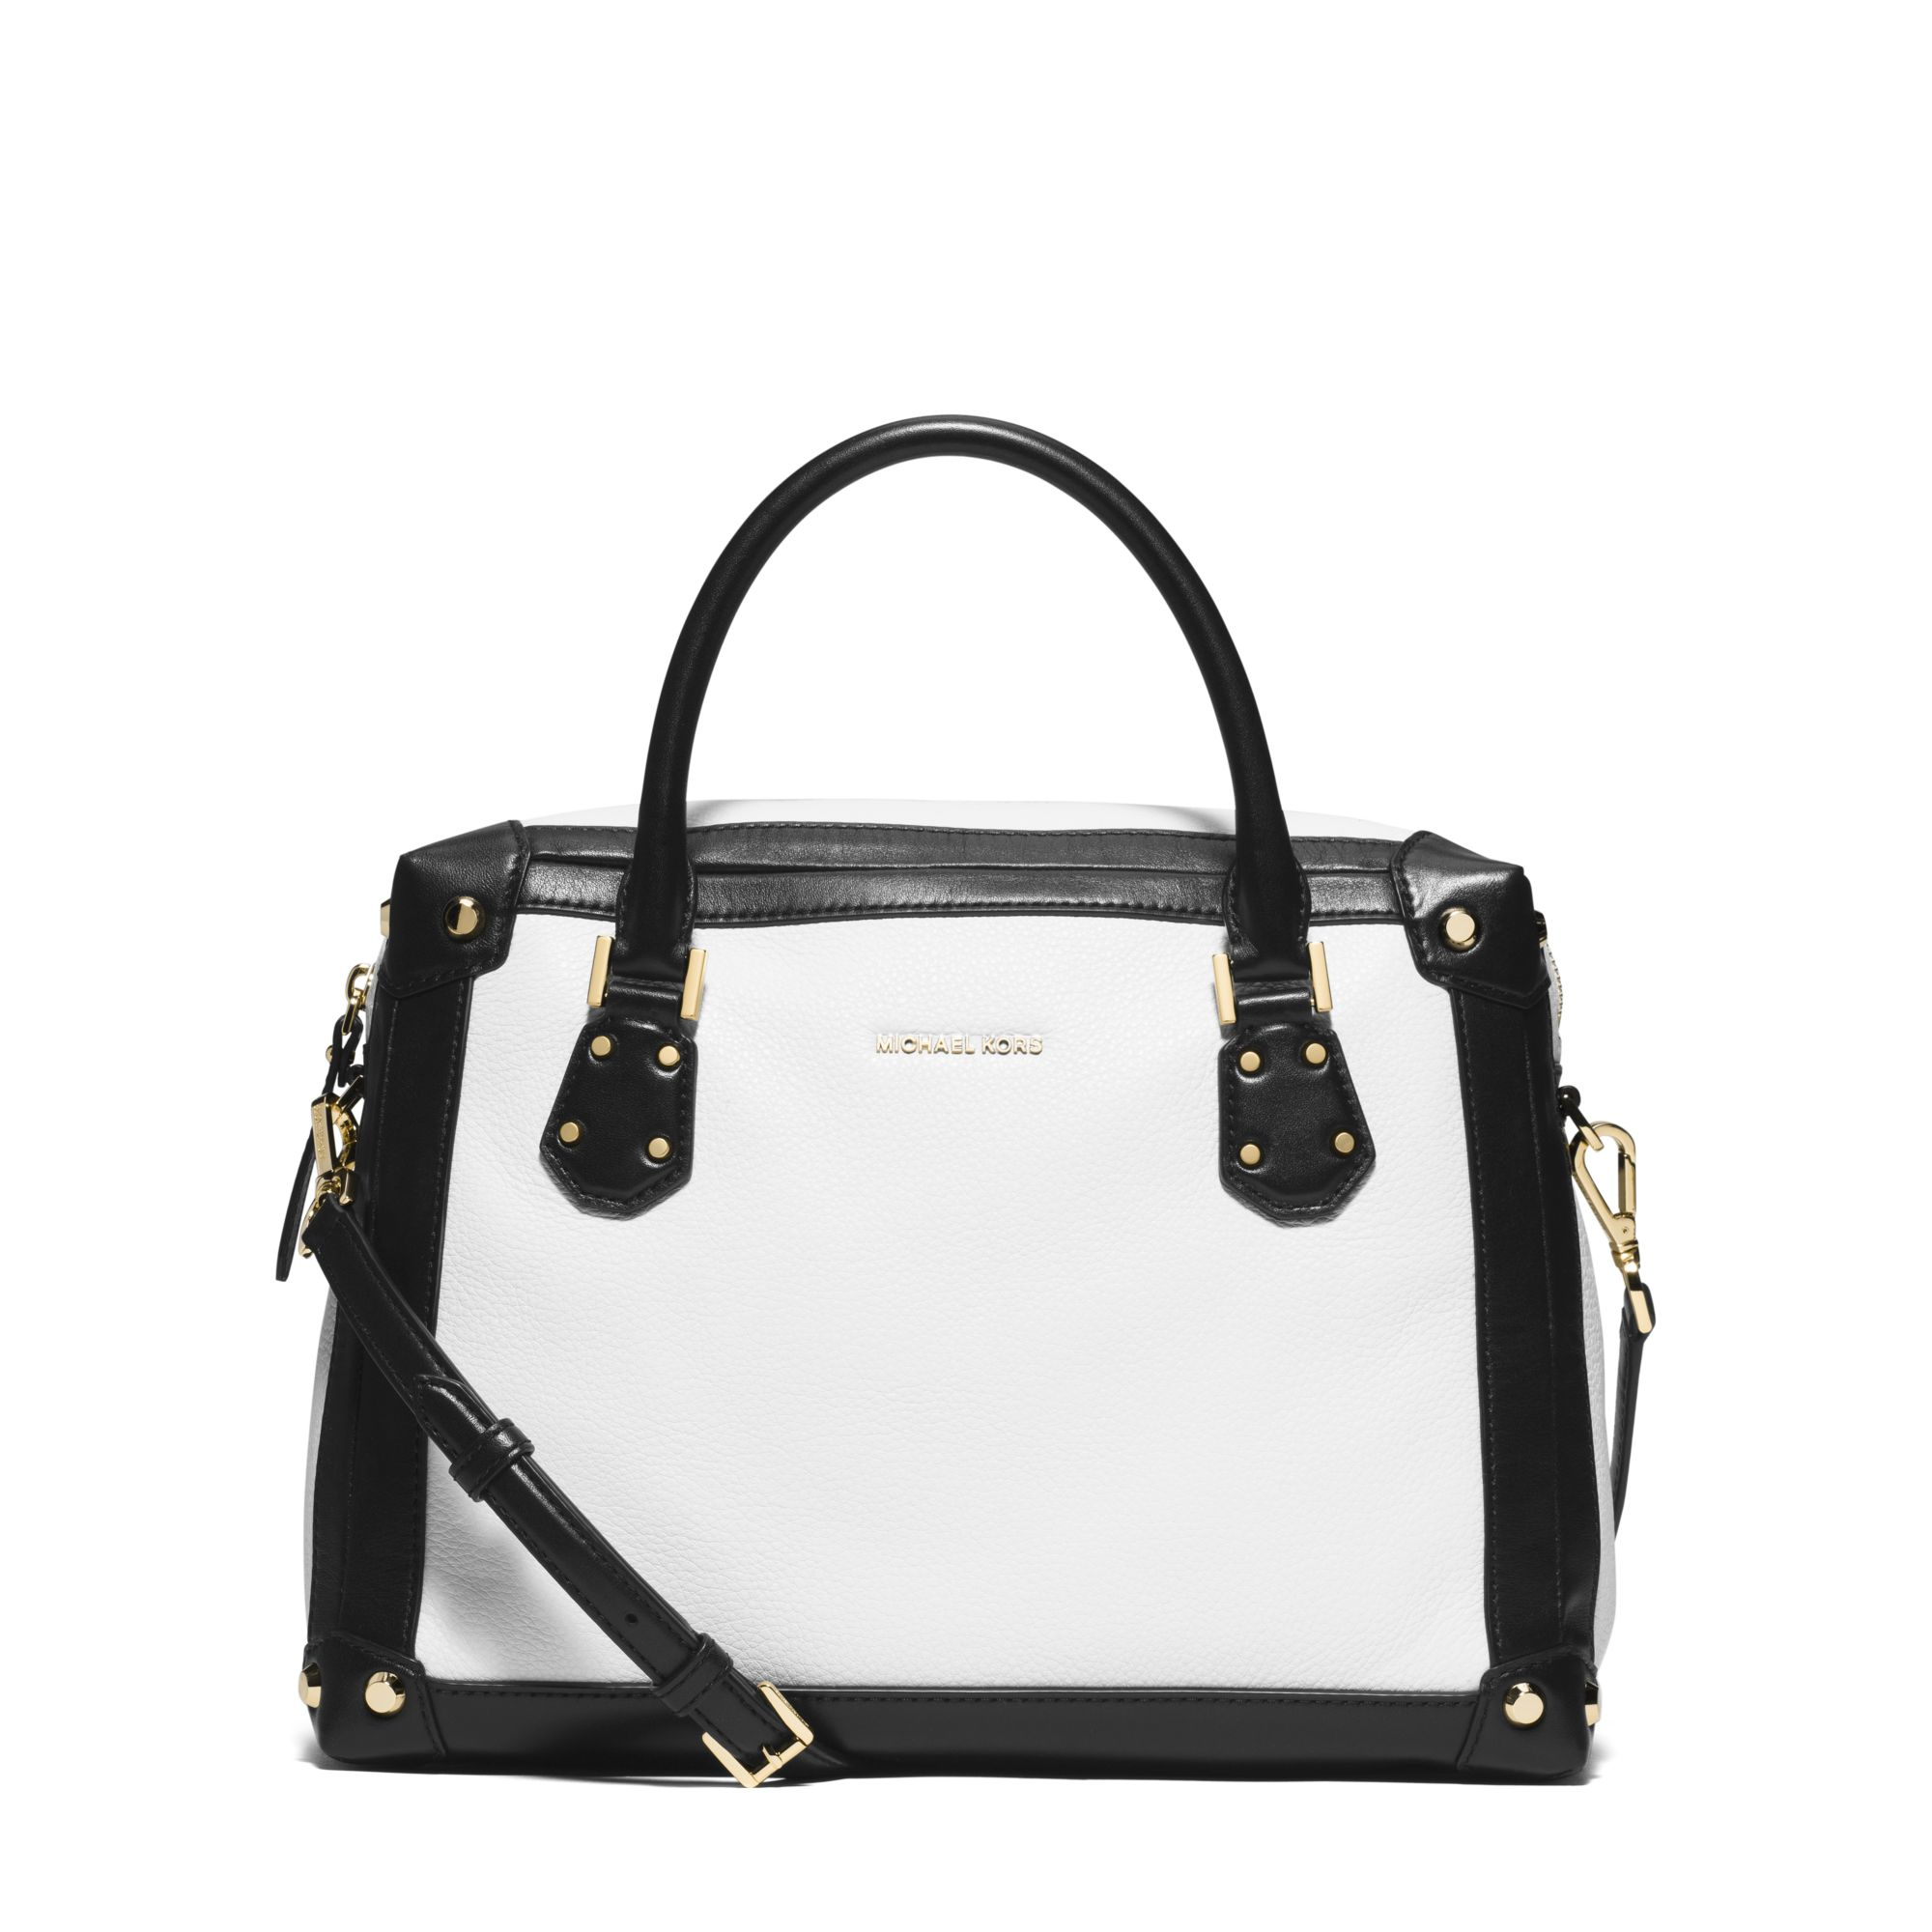 a848833d64da ... coupon for lyst michael kors taryn large leather satchel in black 51d09  28408